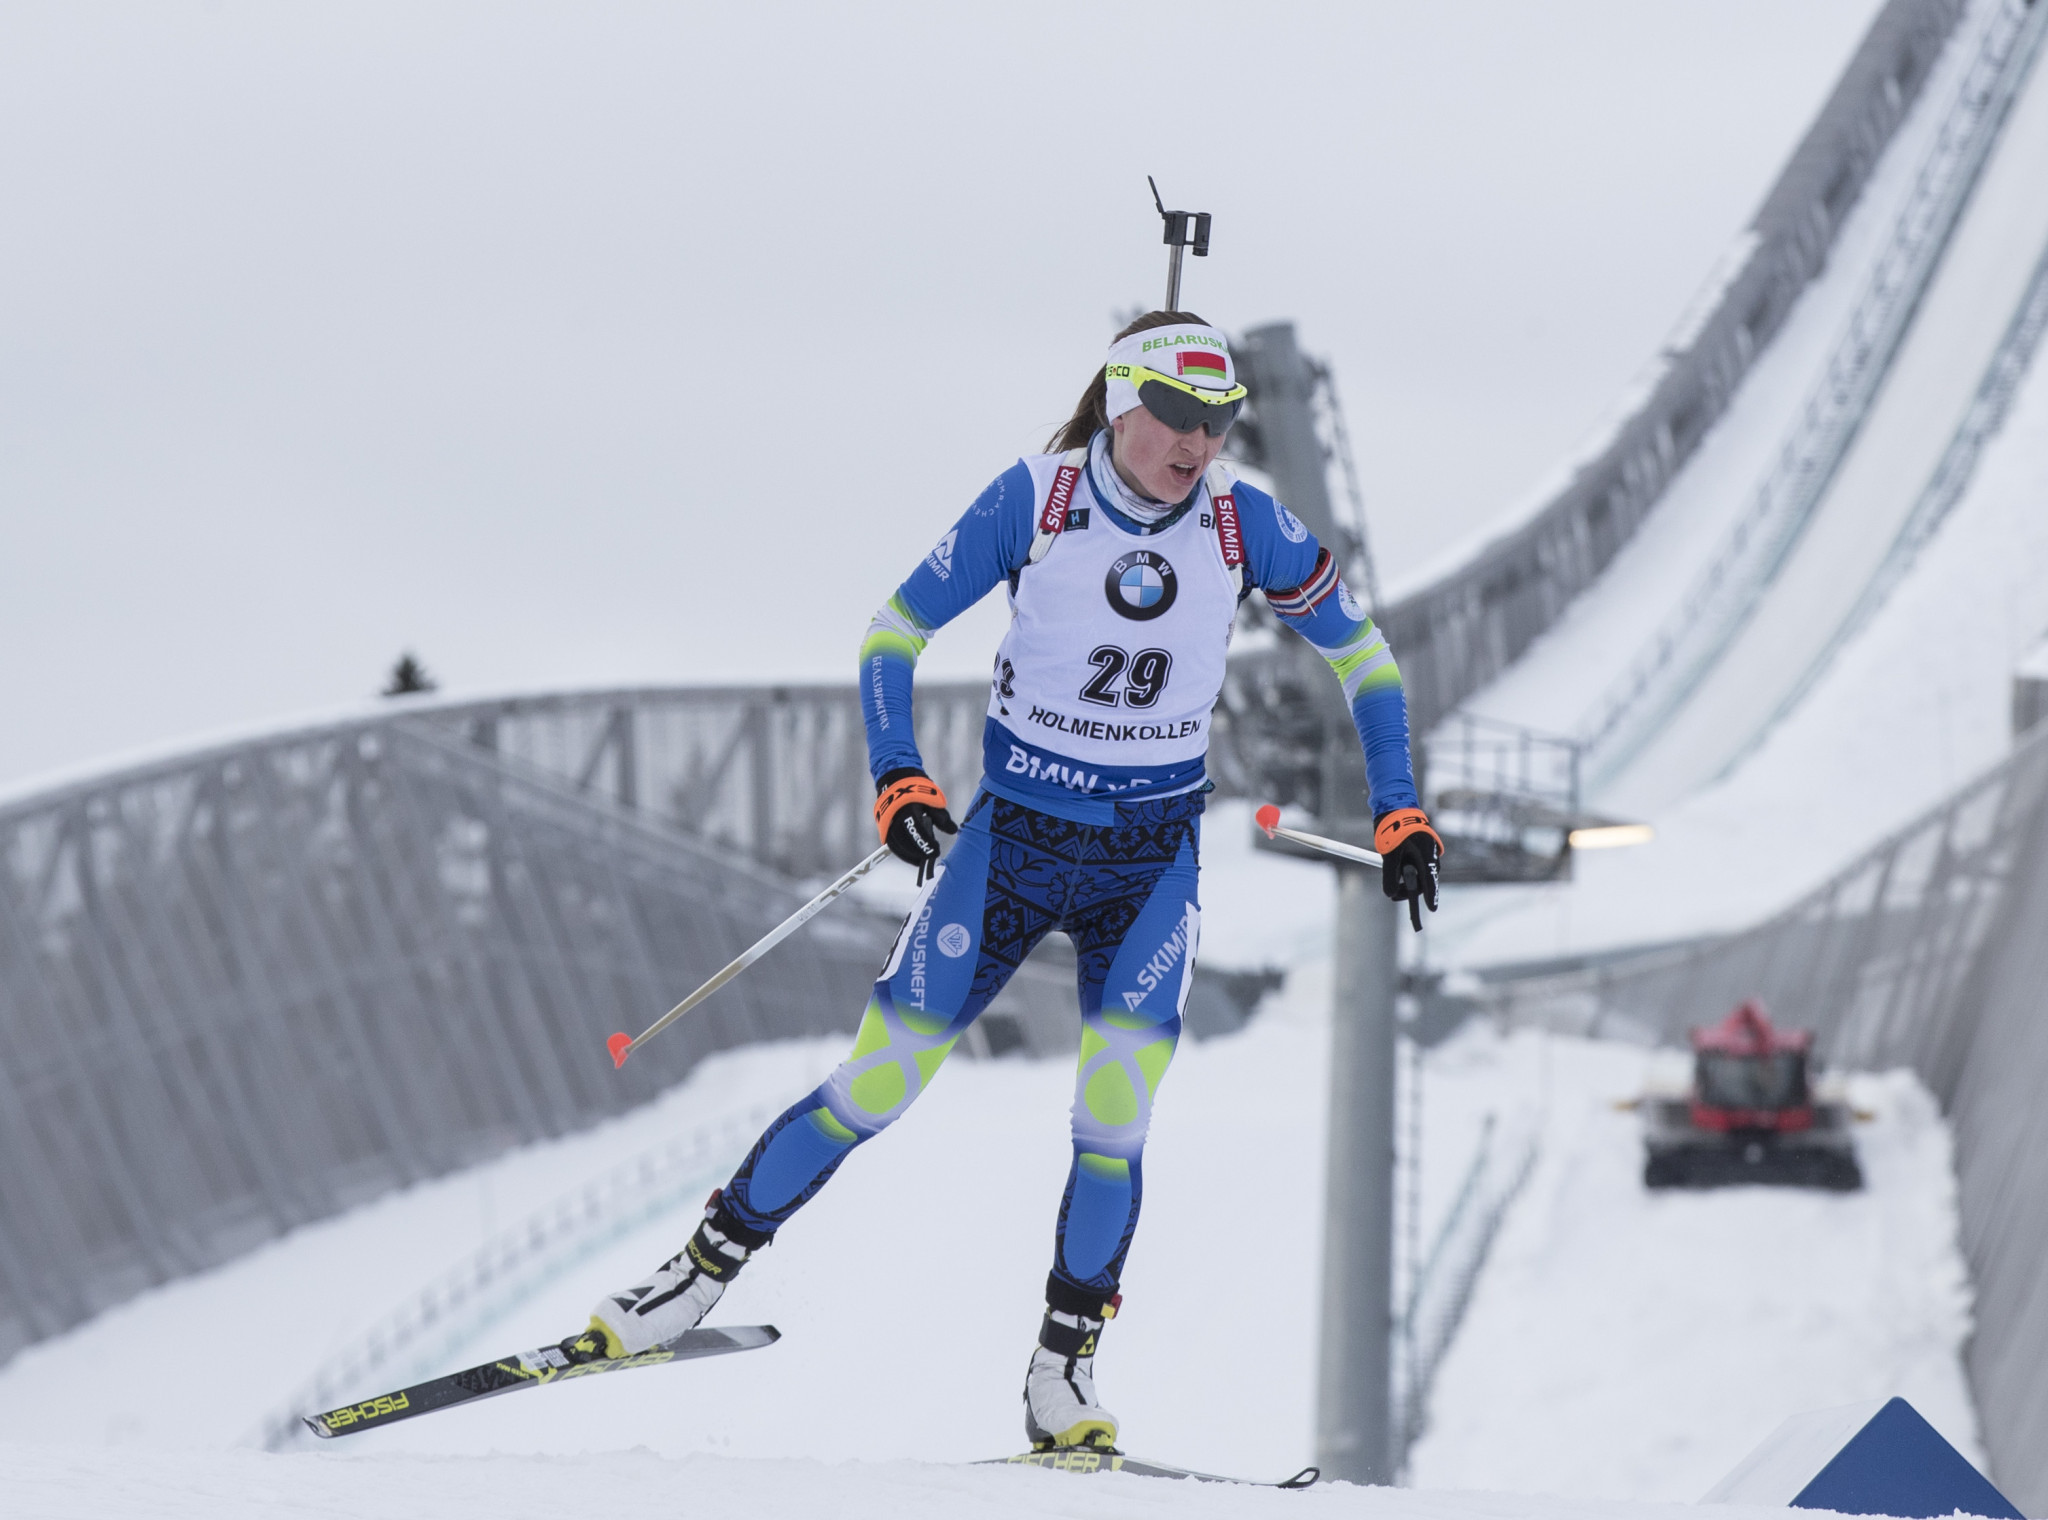 Norwegian Biathlon Association ponders moving camp from France to Italy due to COVID-19